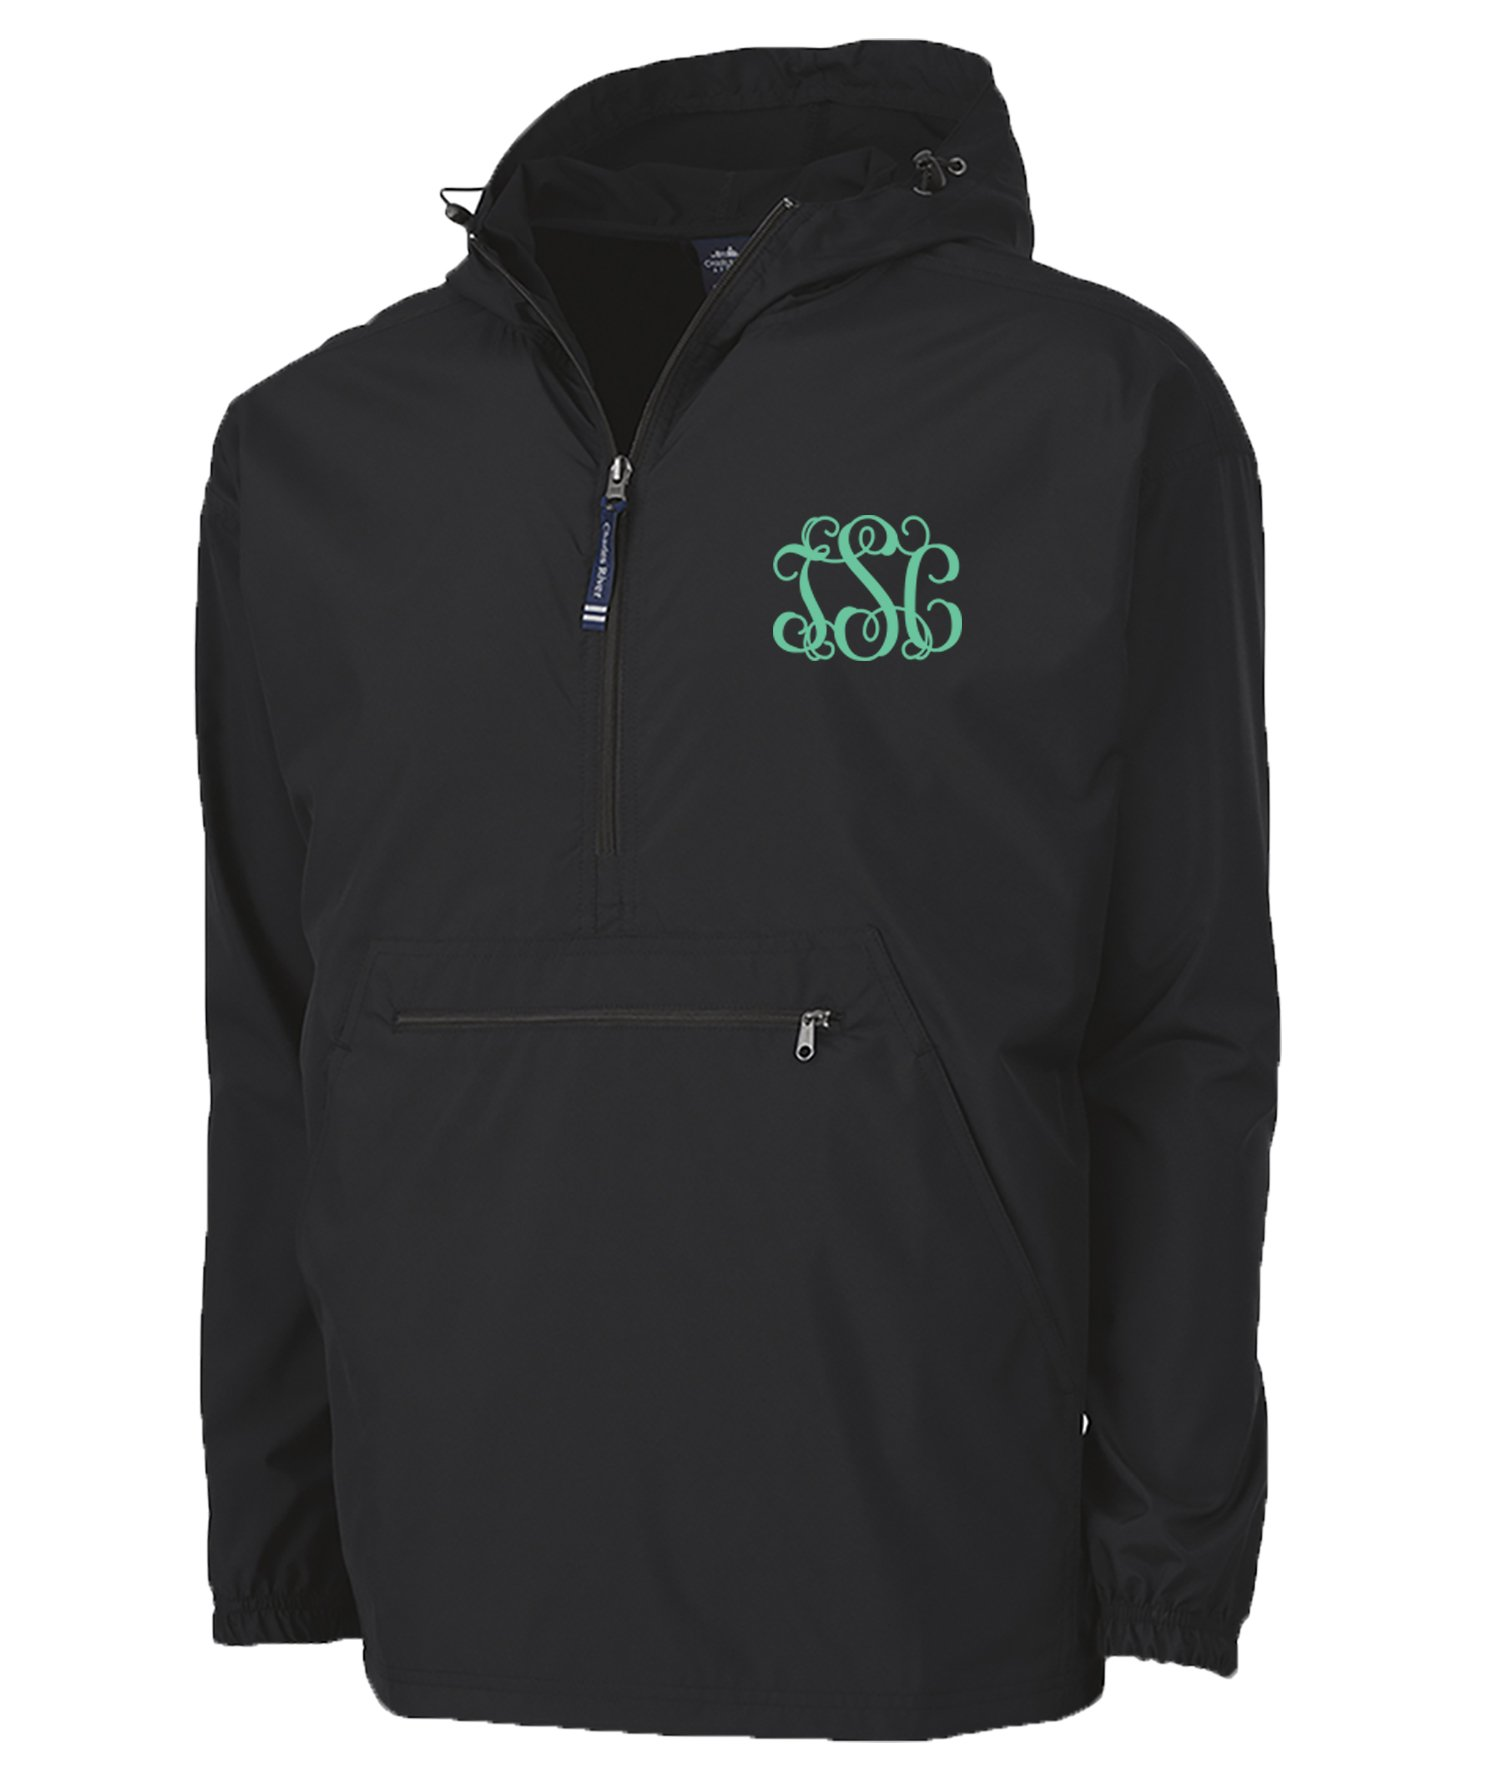 Personalized Charles River Apparel Monogrammed Pack-N-Go Windbreaker Pullover Jacket-Black-Large